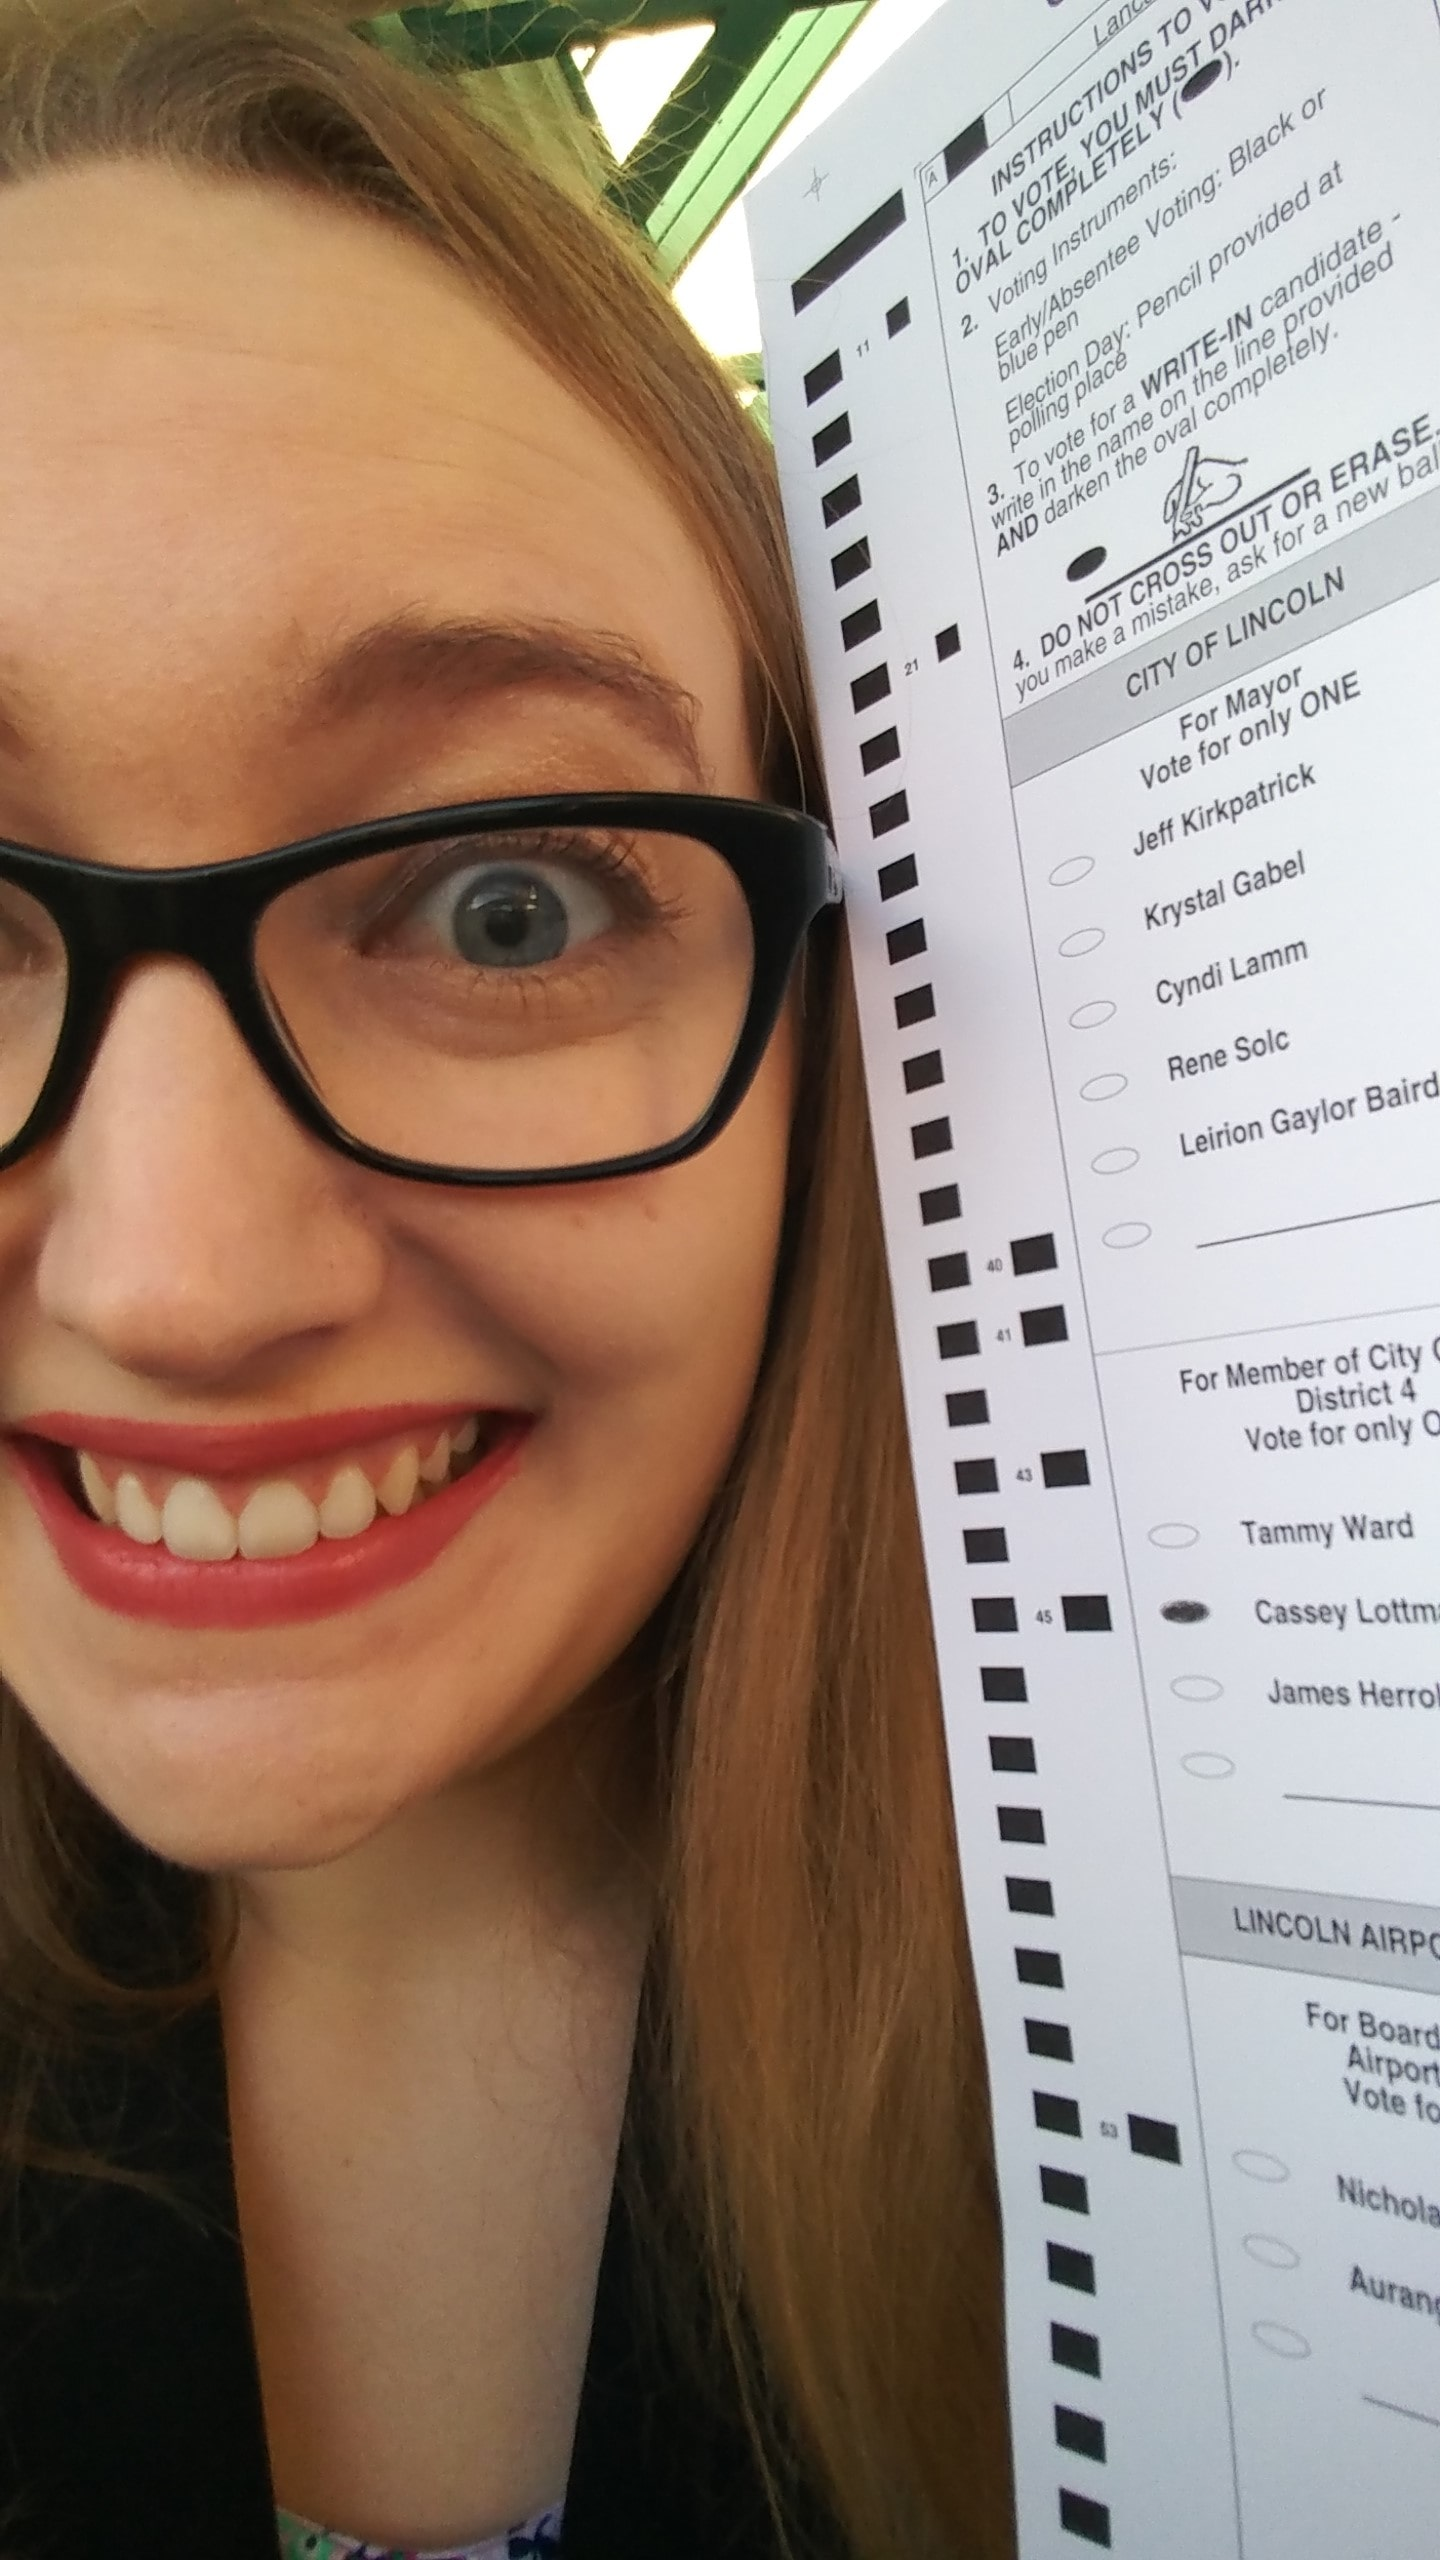 A close-up of Cassey's very excited face. She's holding a ballot with her own name on it, with the bubble filled in.